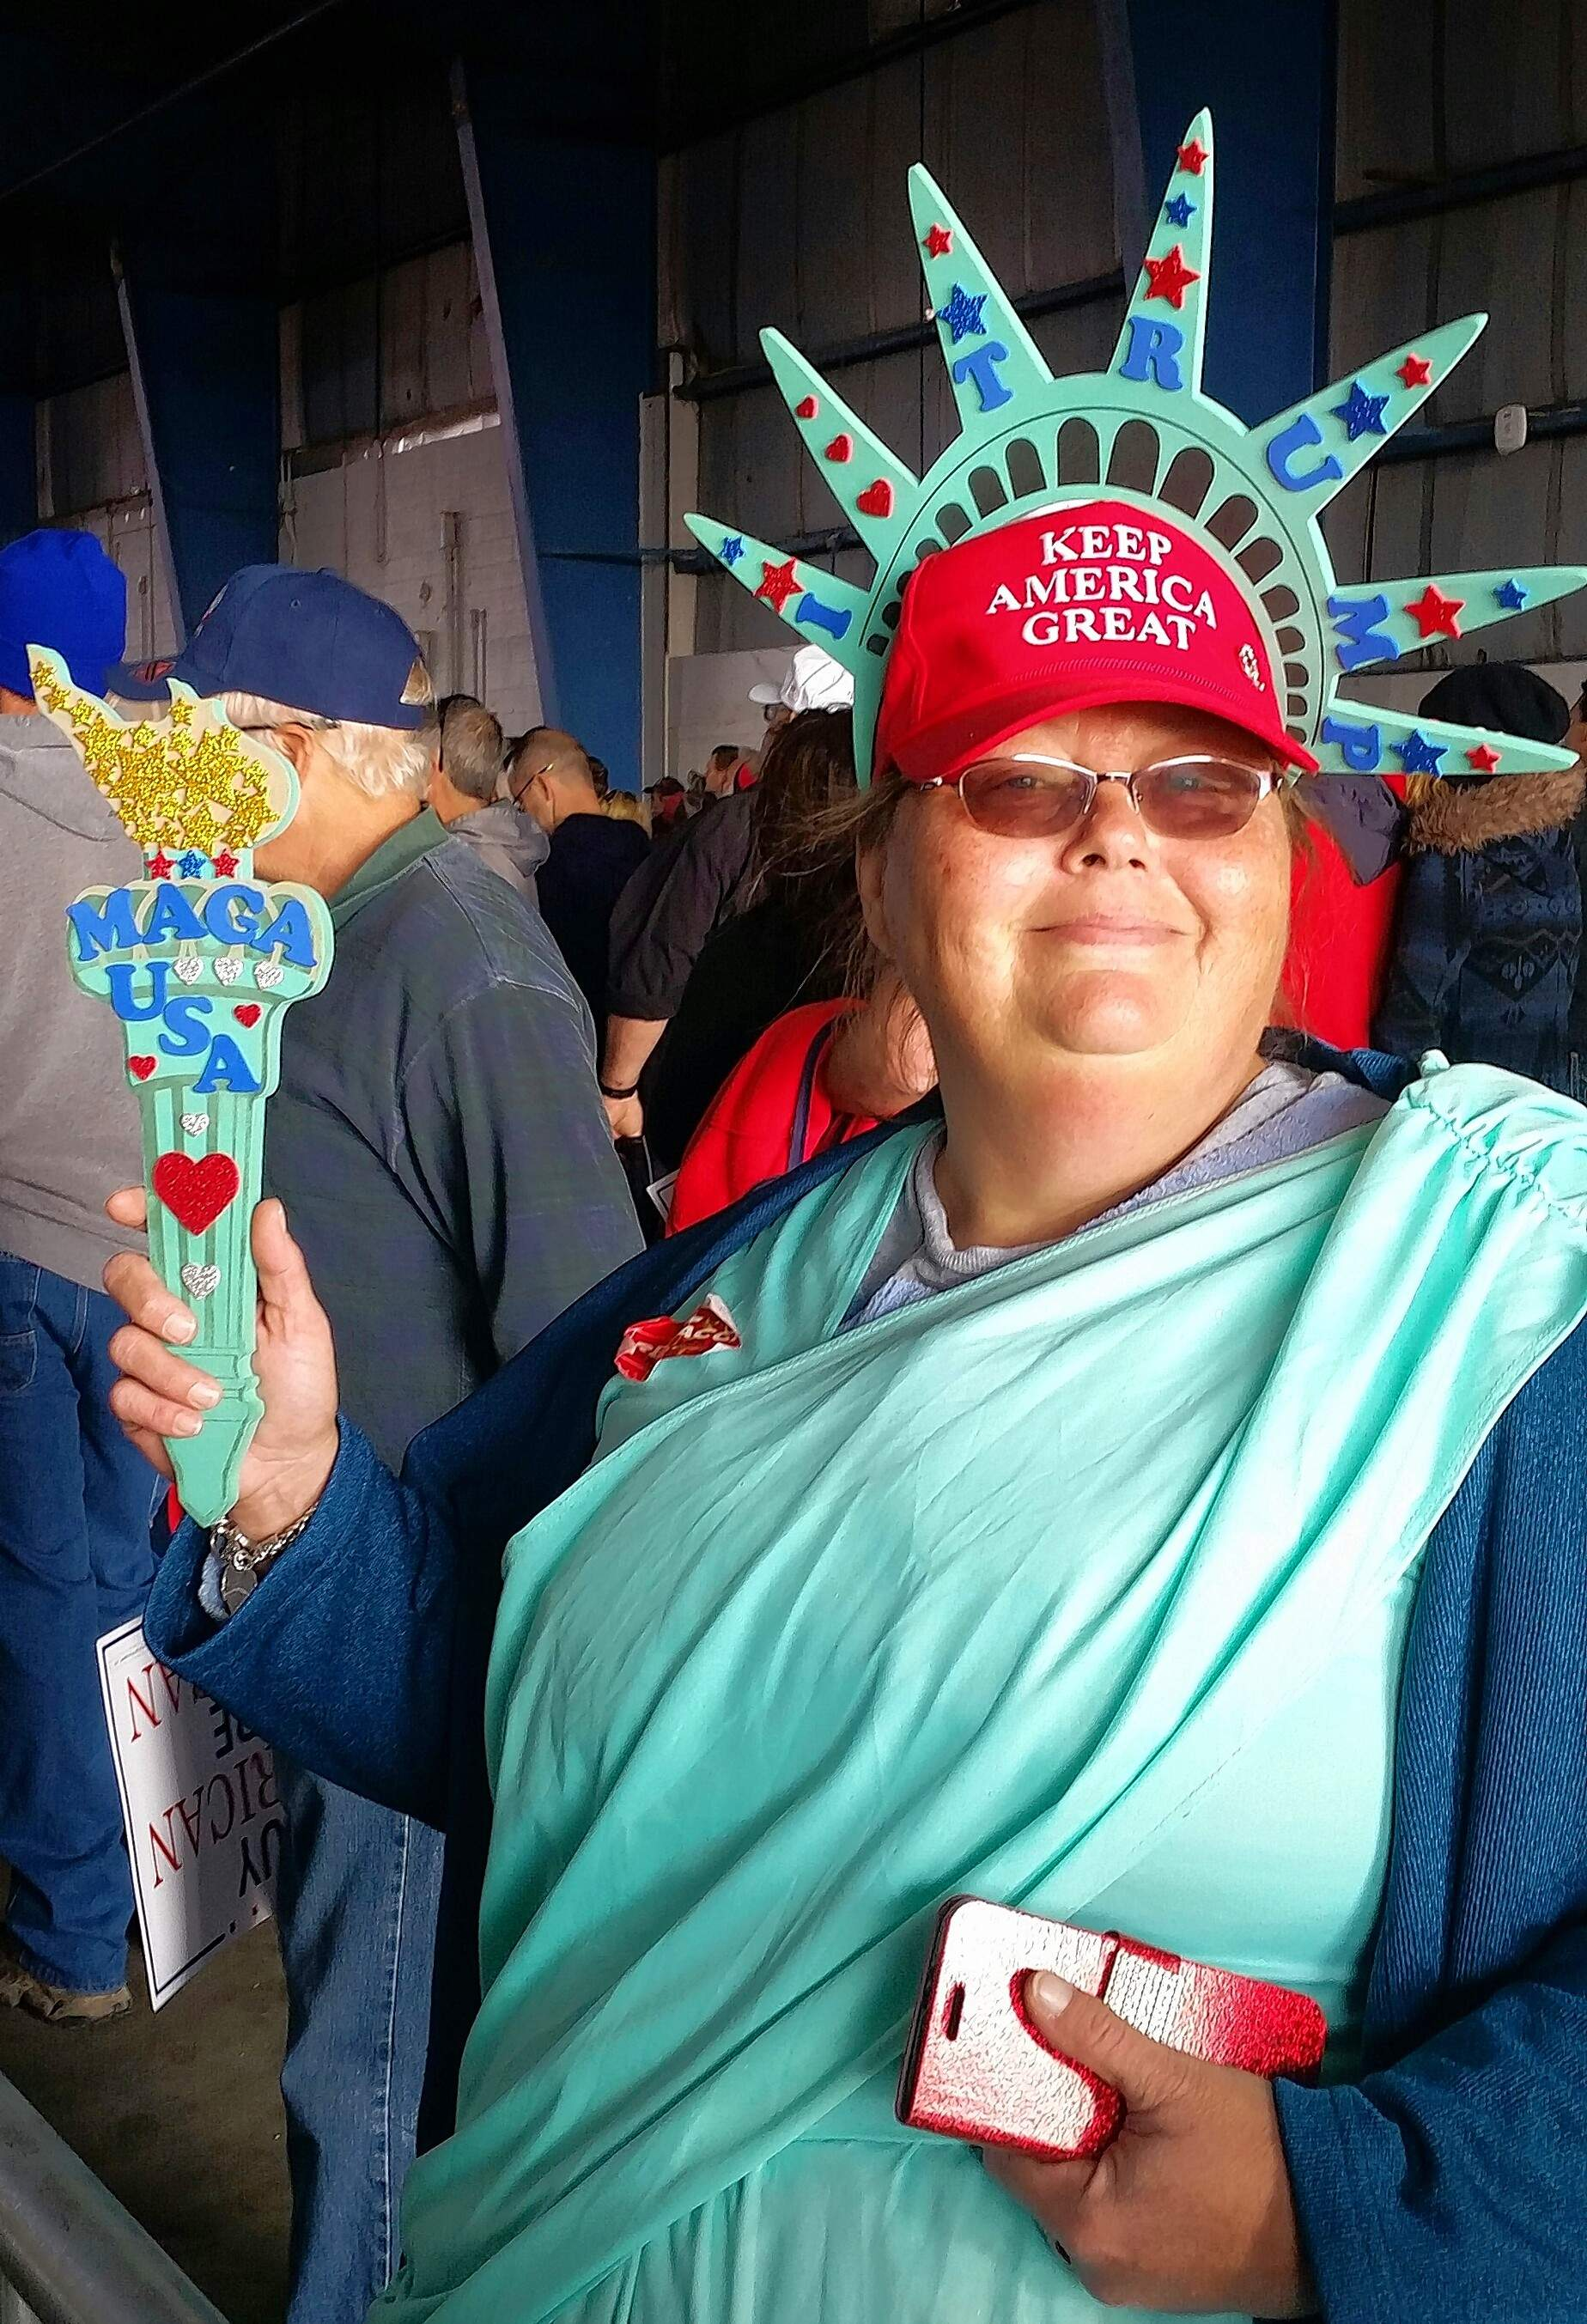 "Calling herself ""Lady Liberty for Trump,""Toni Eaton of Champaign came to the Murphysboro rally. She's been portraying Lady Liberty at Trump rallies since 2016 and just started her own Facebook page."